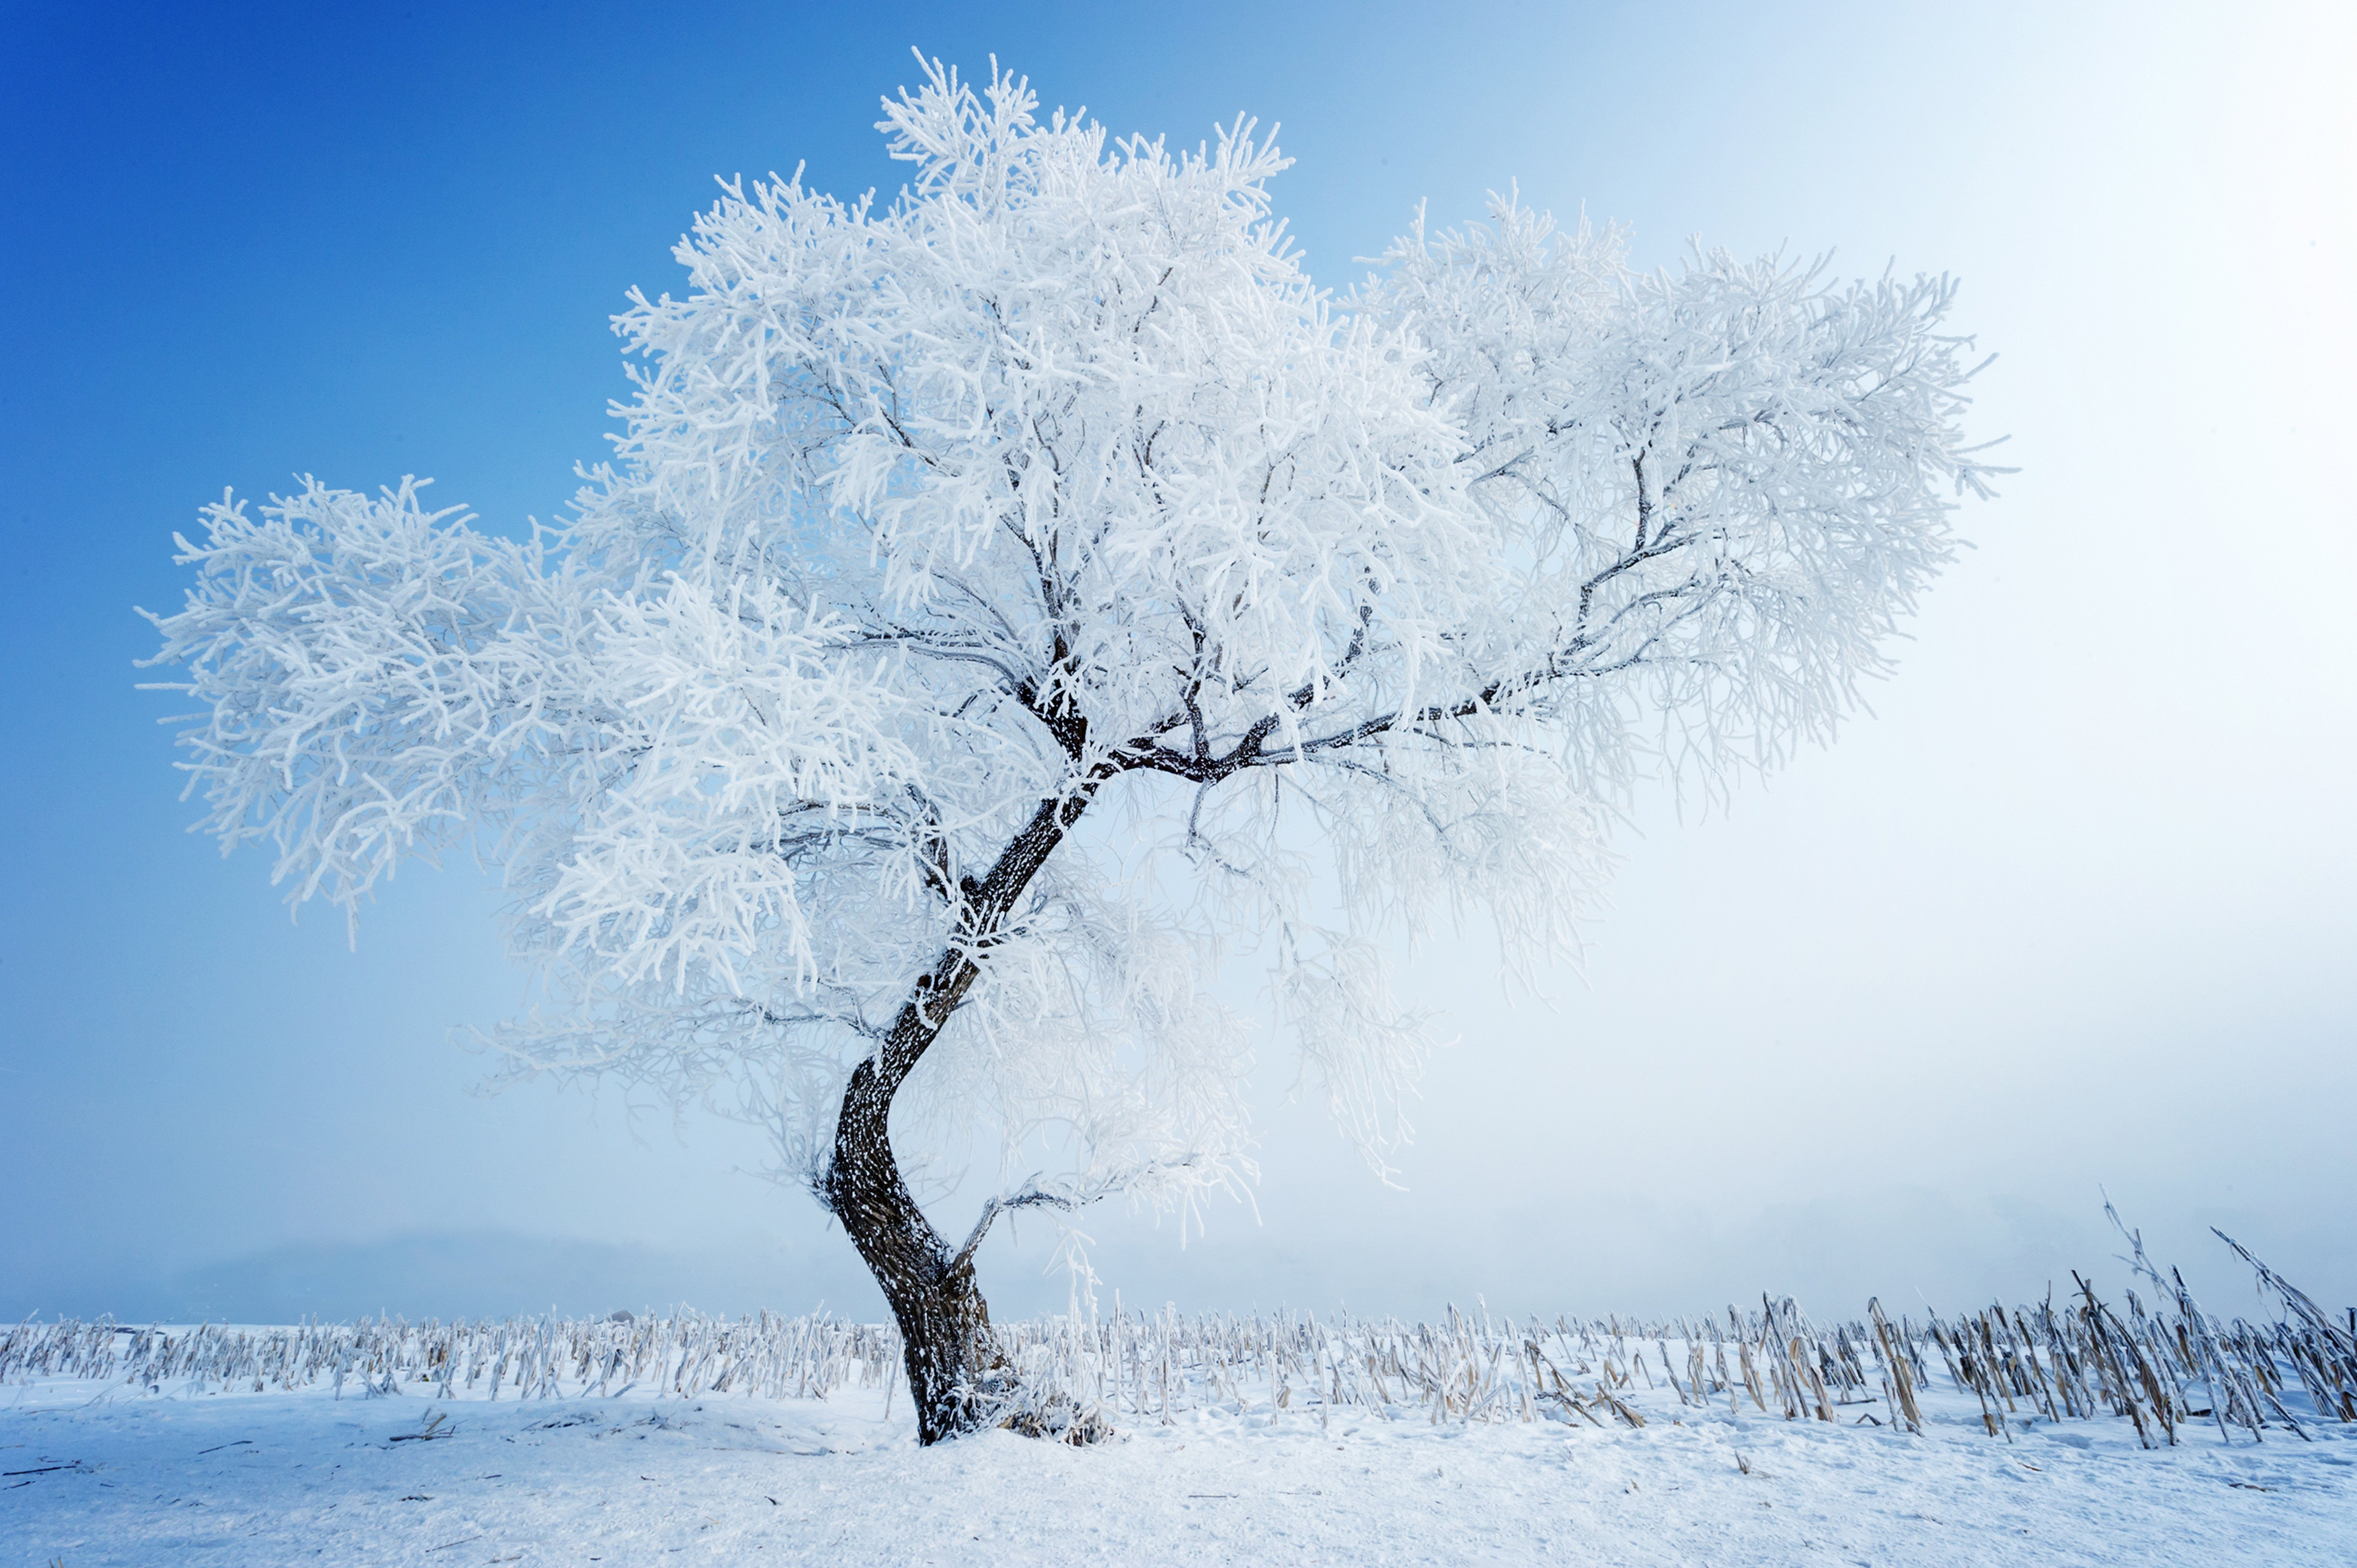 pin snow wallpapers trees - photo #23